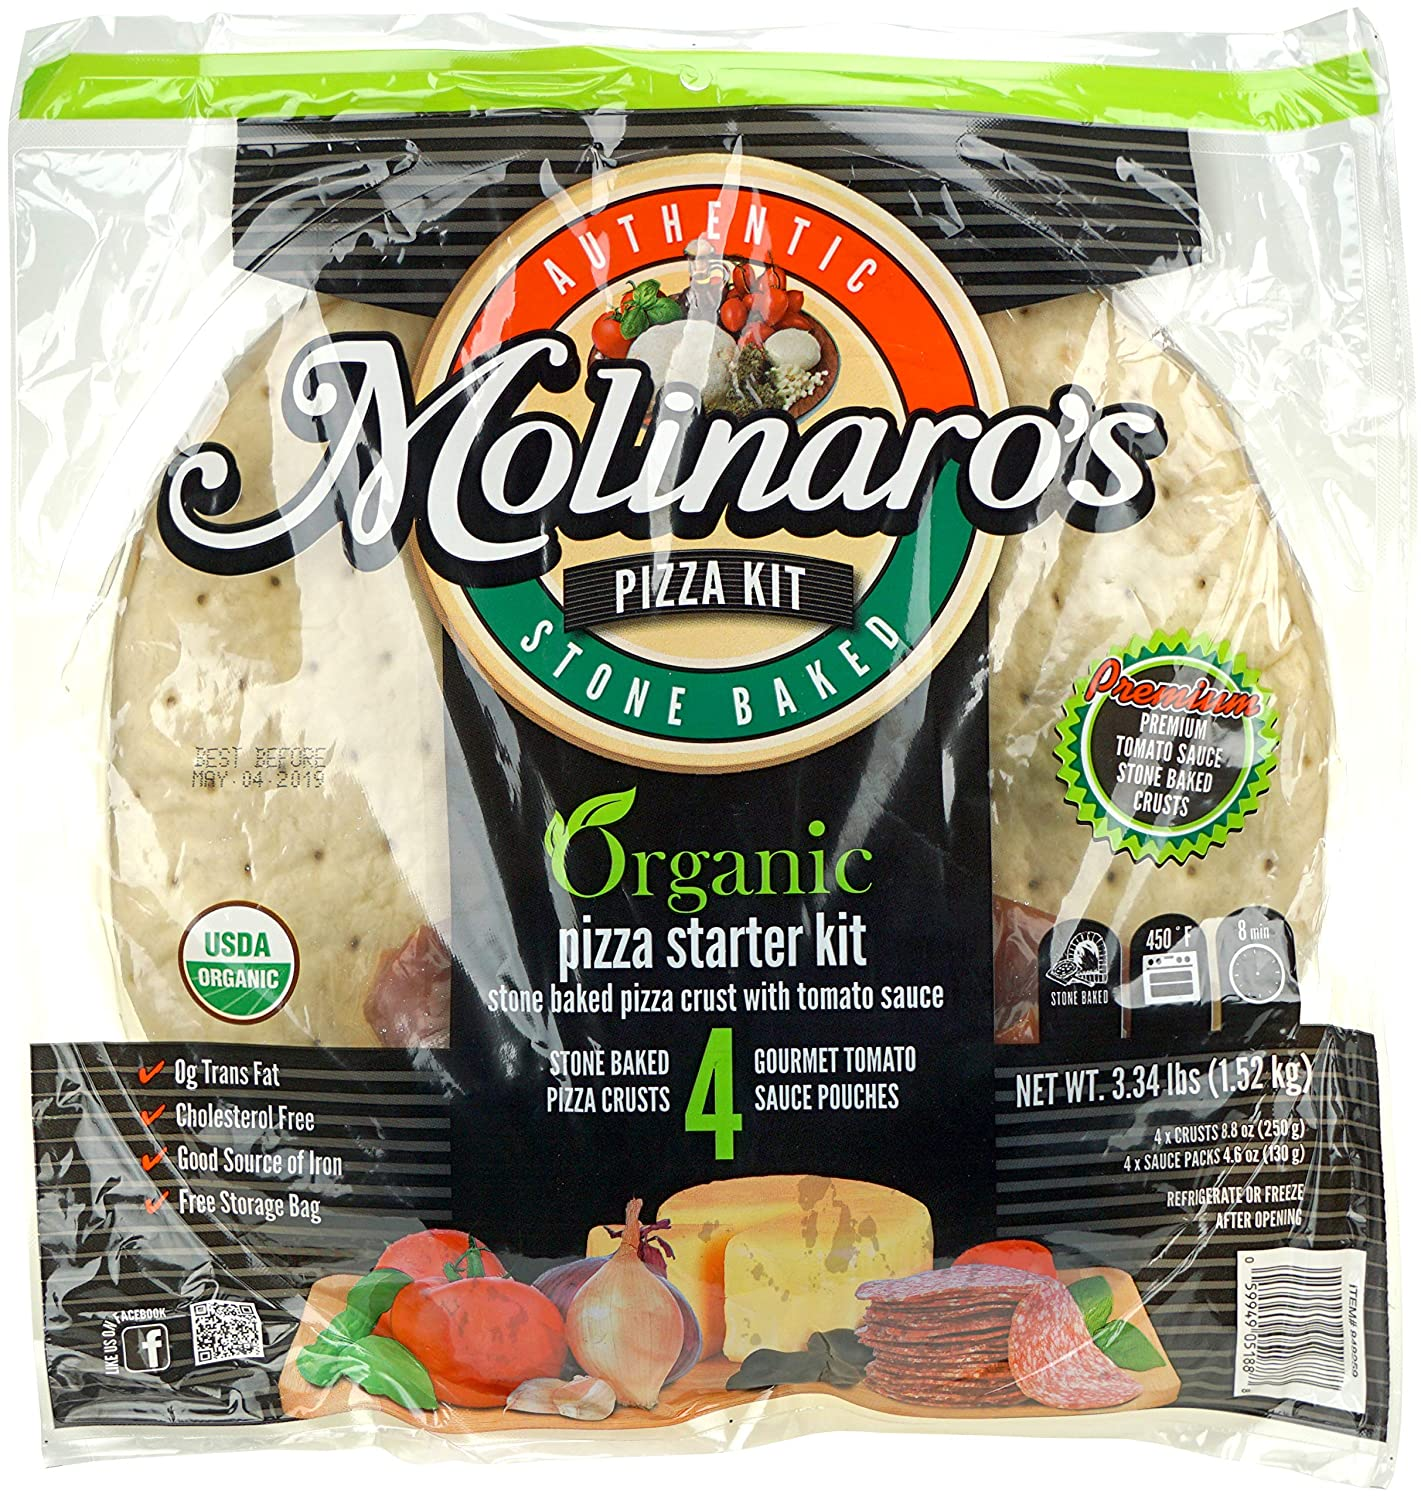 Molinaro's Organic Pizza Starter Kit - 4 Stone Baked Pizza Crusts and 4 Gourmet Tomato Sauce Pouches